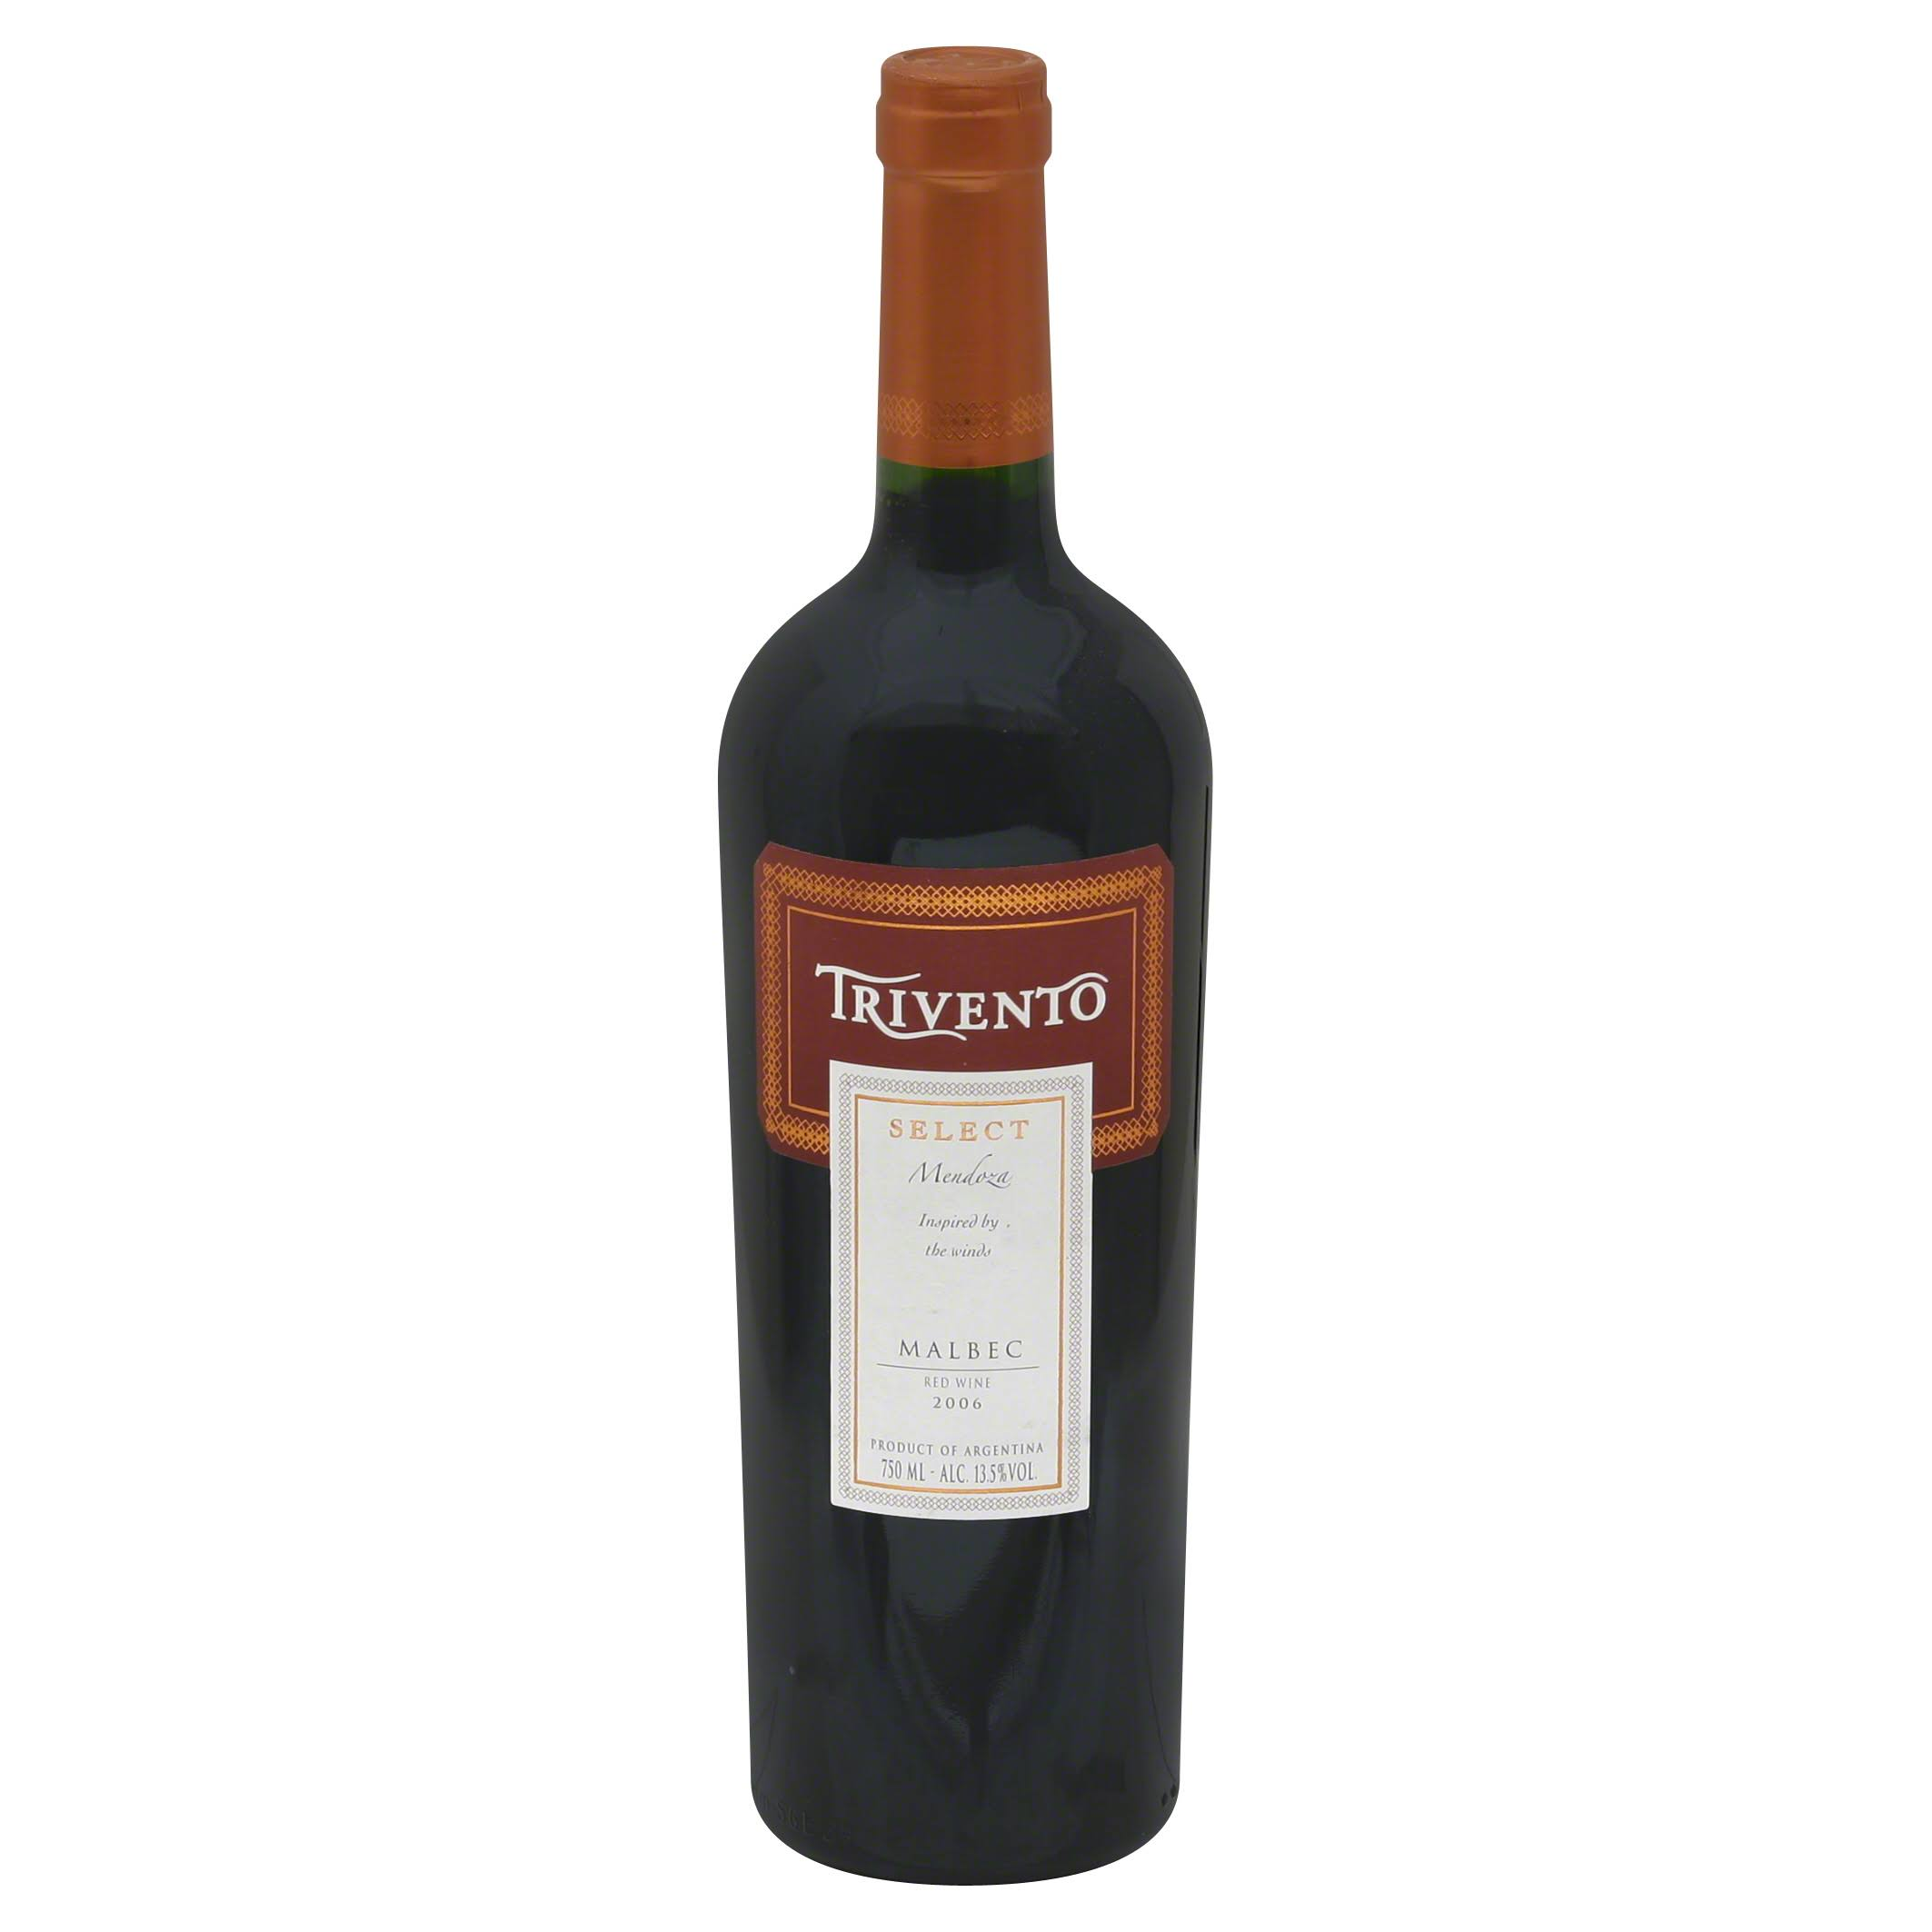 Trivento Select Malbec, Mendoza, 2006 - 750 ml